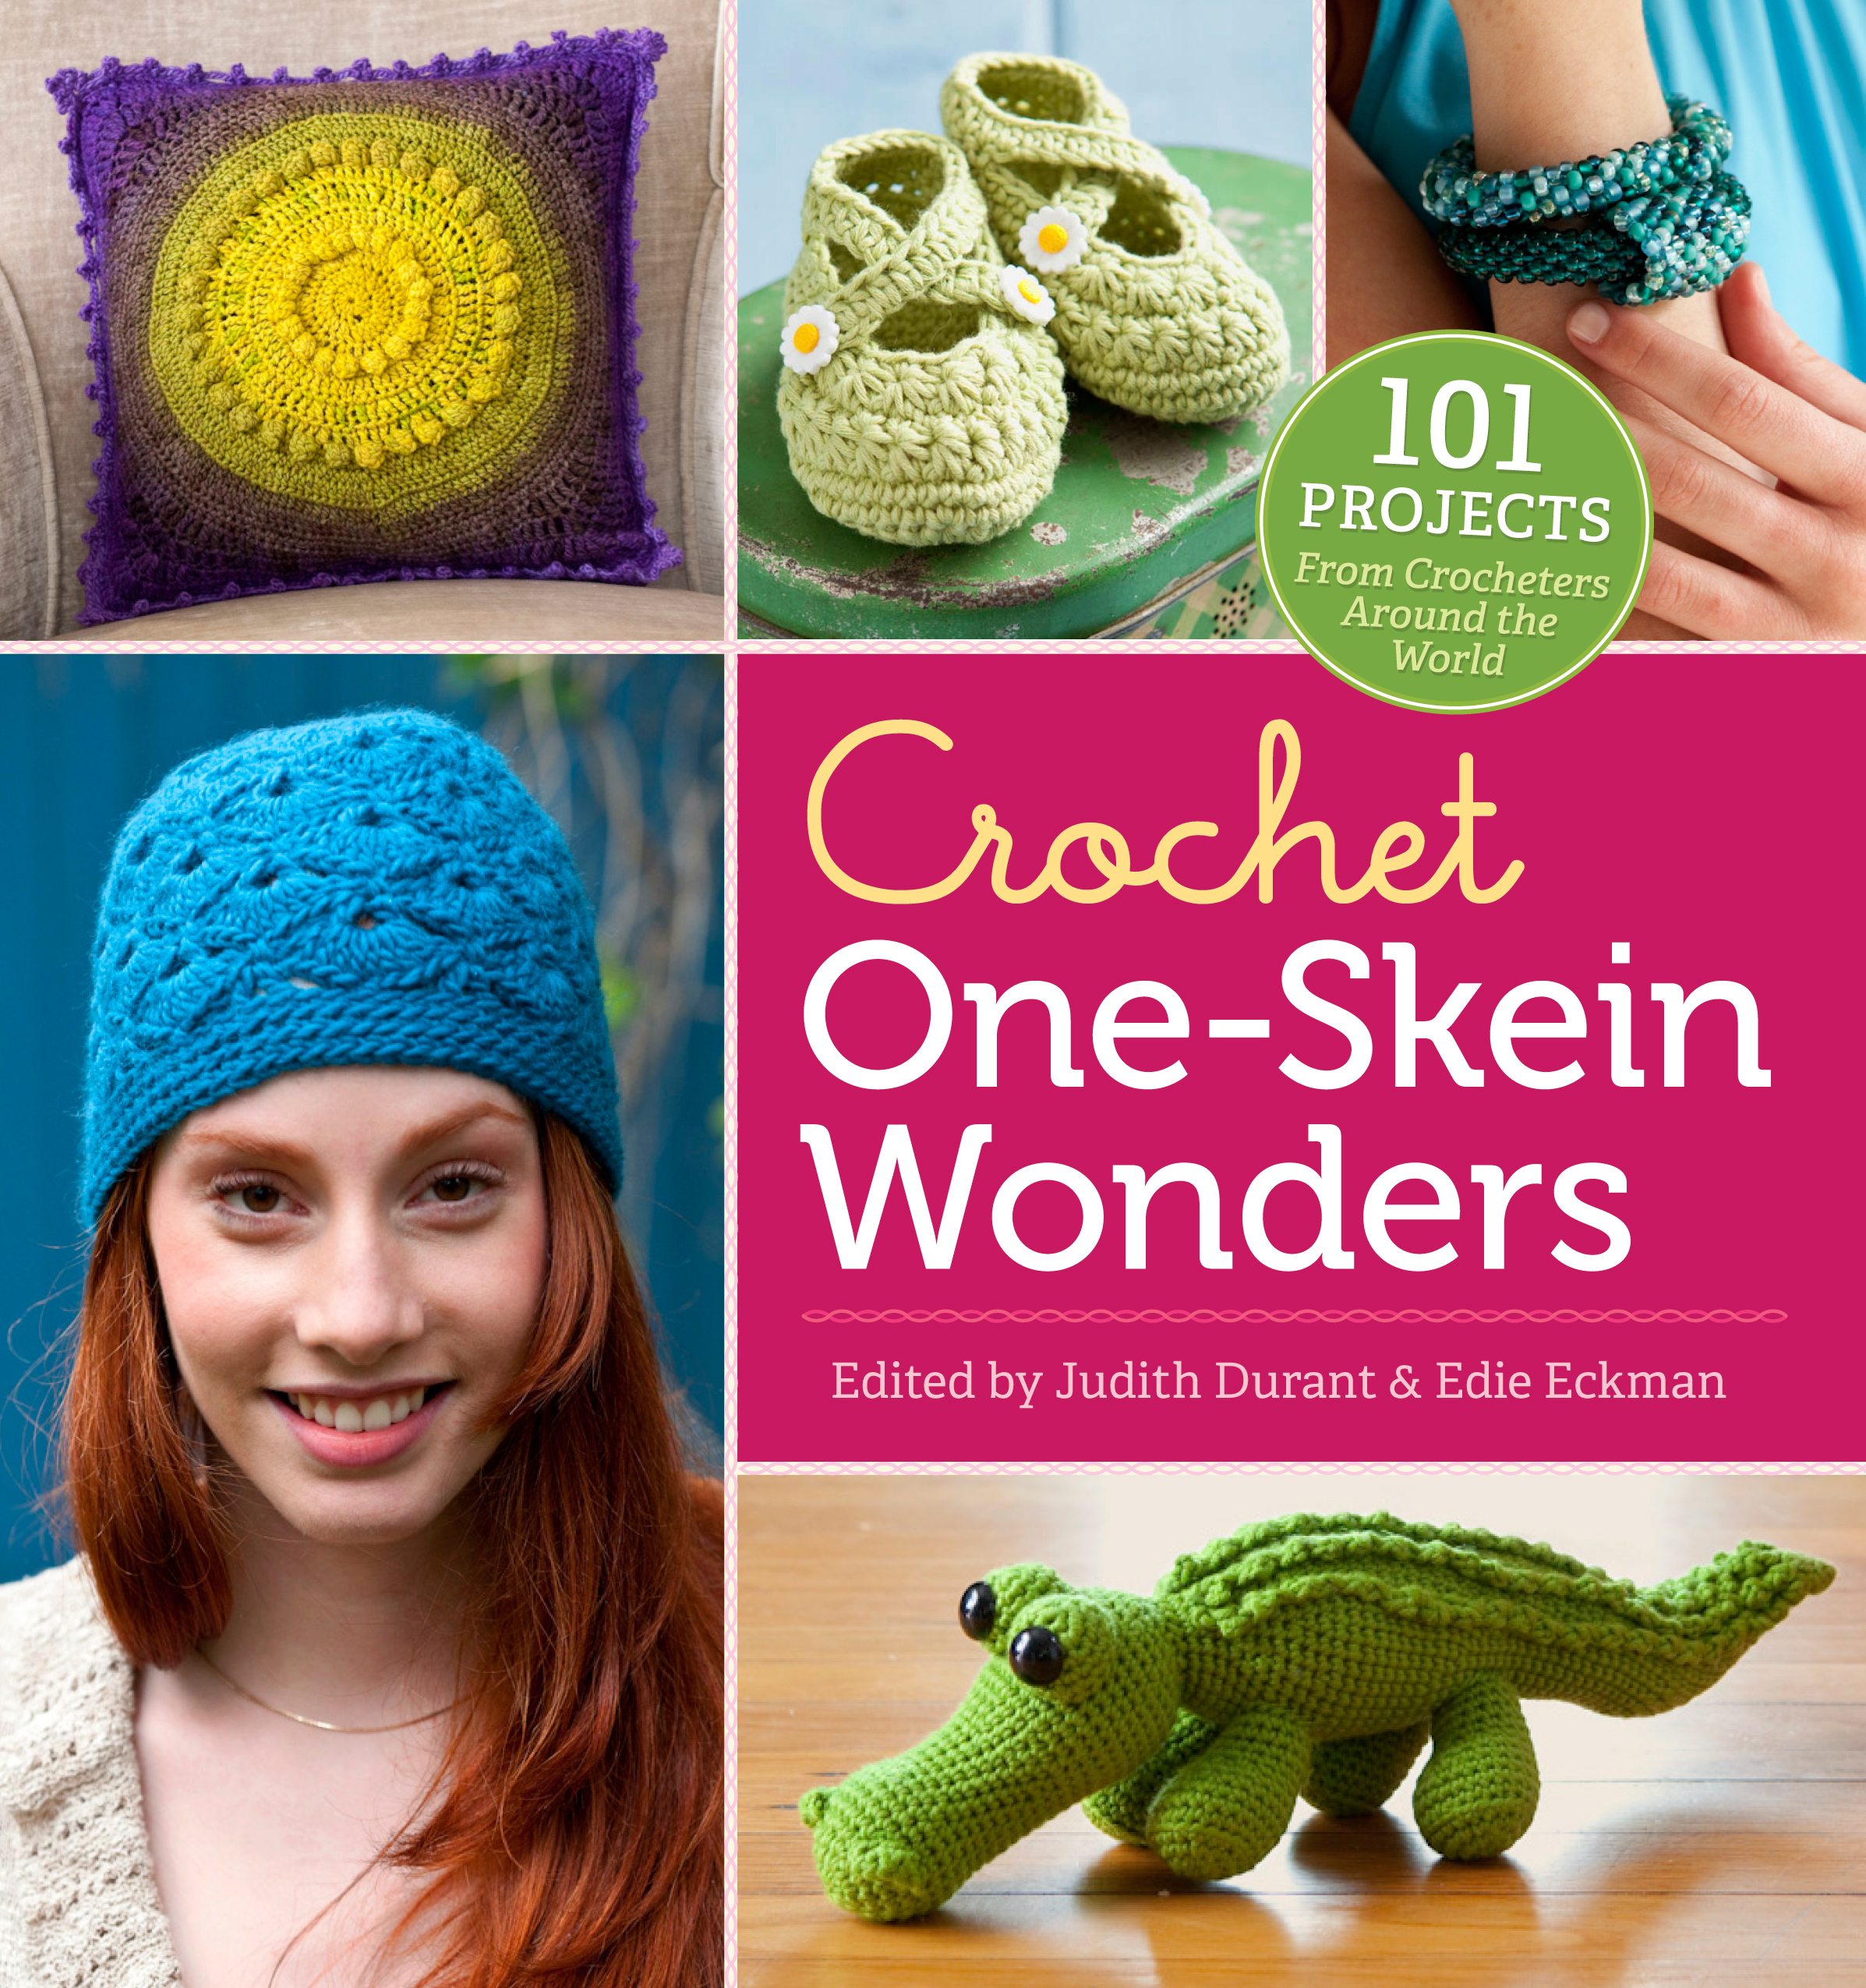 Crochet One-Skein Wonders<sup>®</sup> 101 Projects from Crocheters around the World - Judith Durant